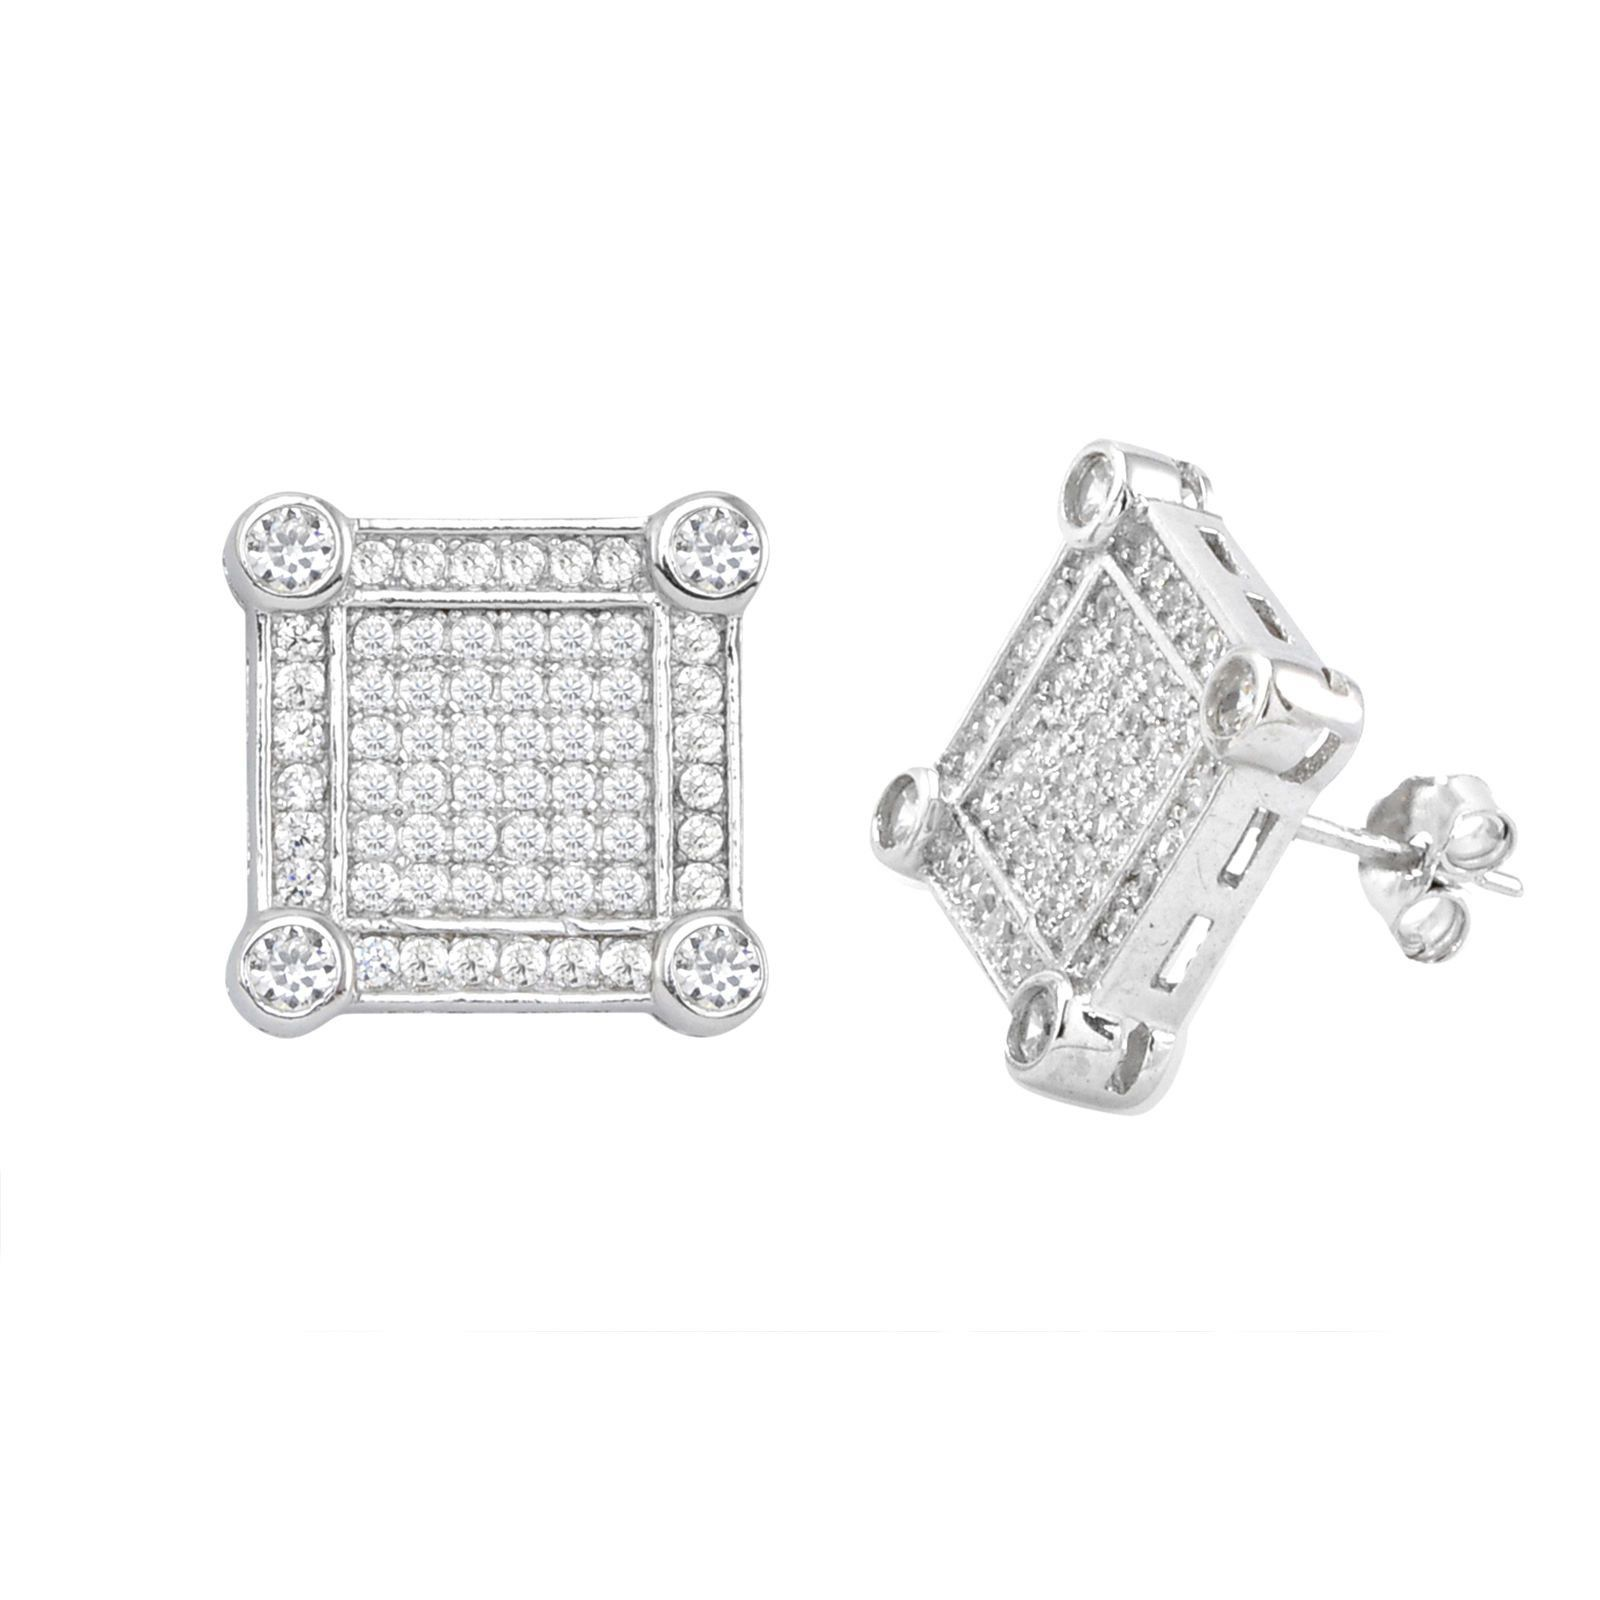 efdbd2240 Earrings Square CZ Micro Pave Cubic Zirconia Black White Kite Stud For Men  For Women Stud Earrings 925 Sterling Silver 9mm